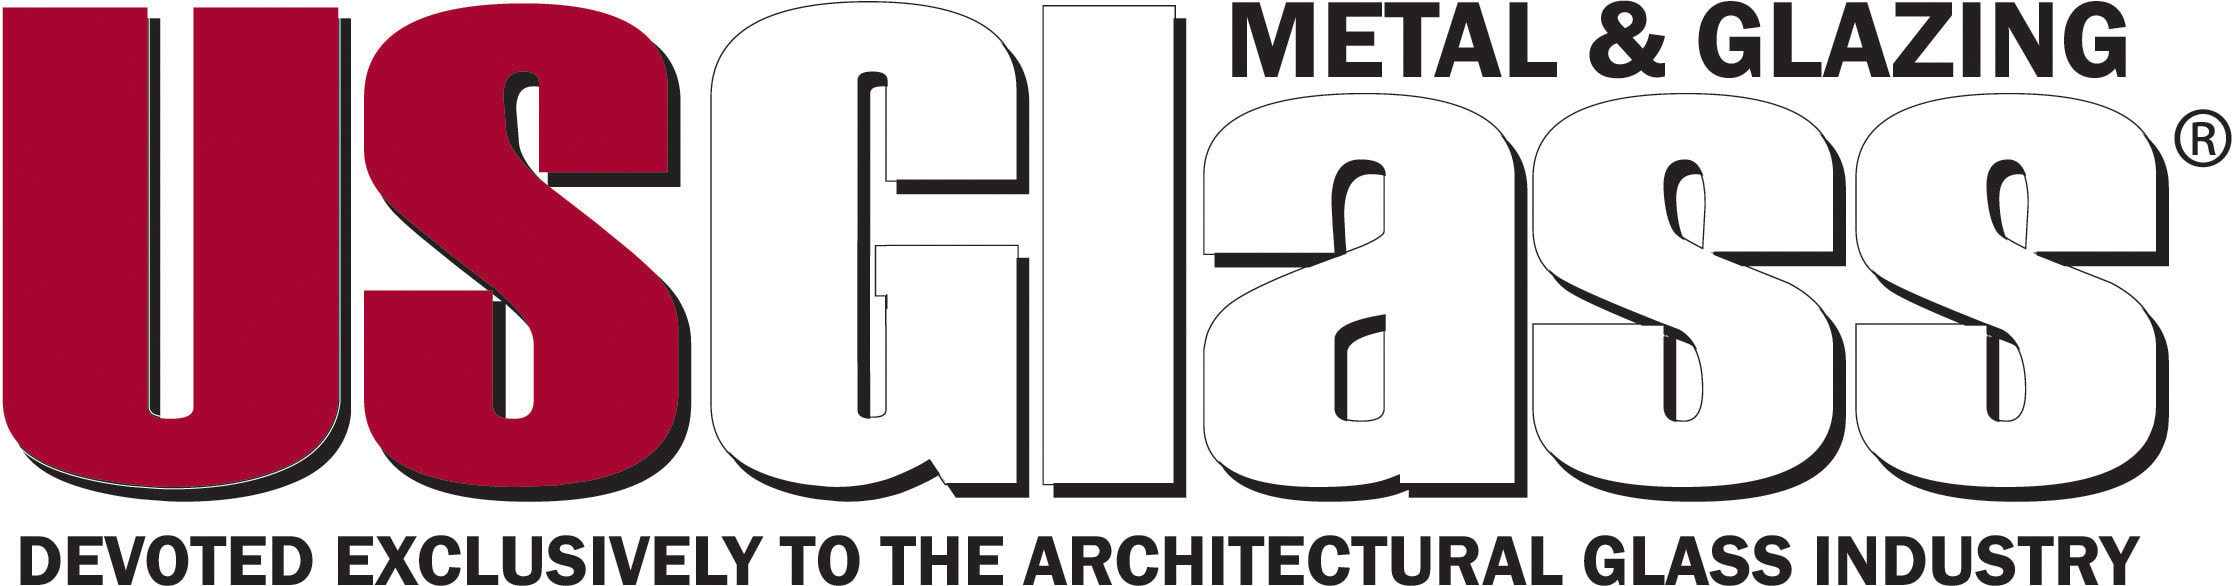 Co-sponsored by USGlass magazine, USGNN™ and Architects' Guide to Glass & Metal.